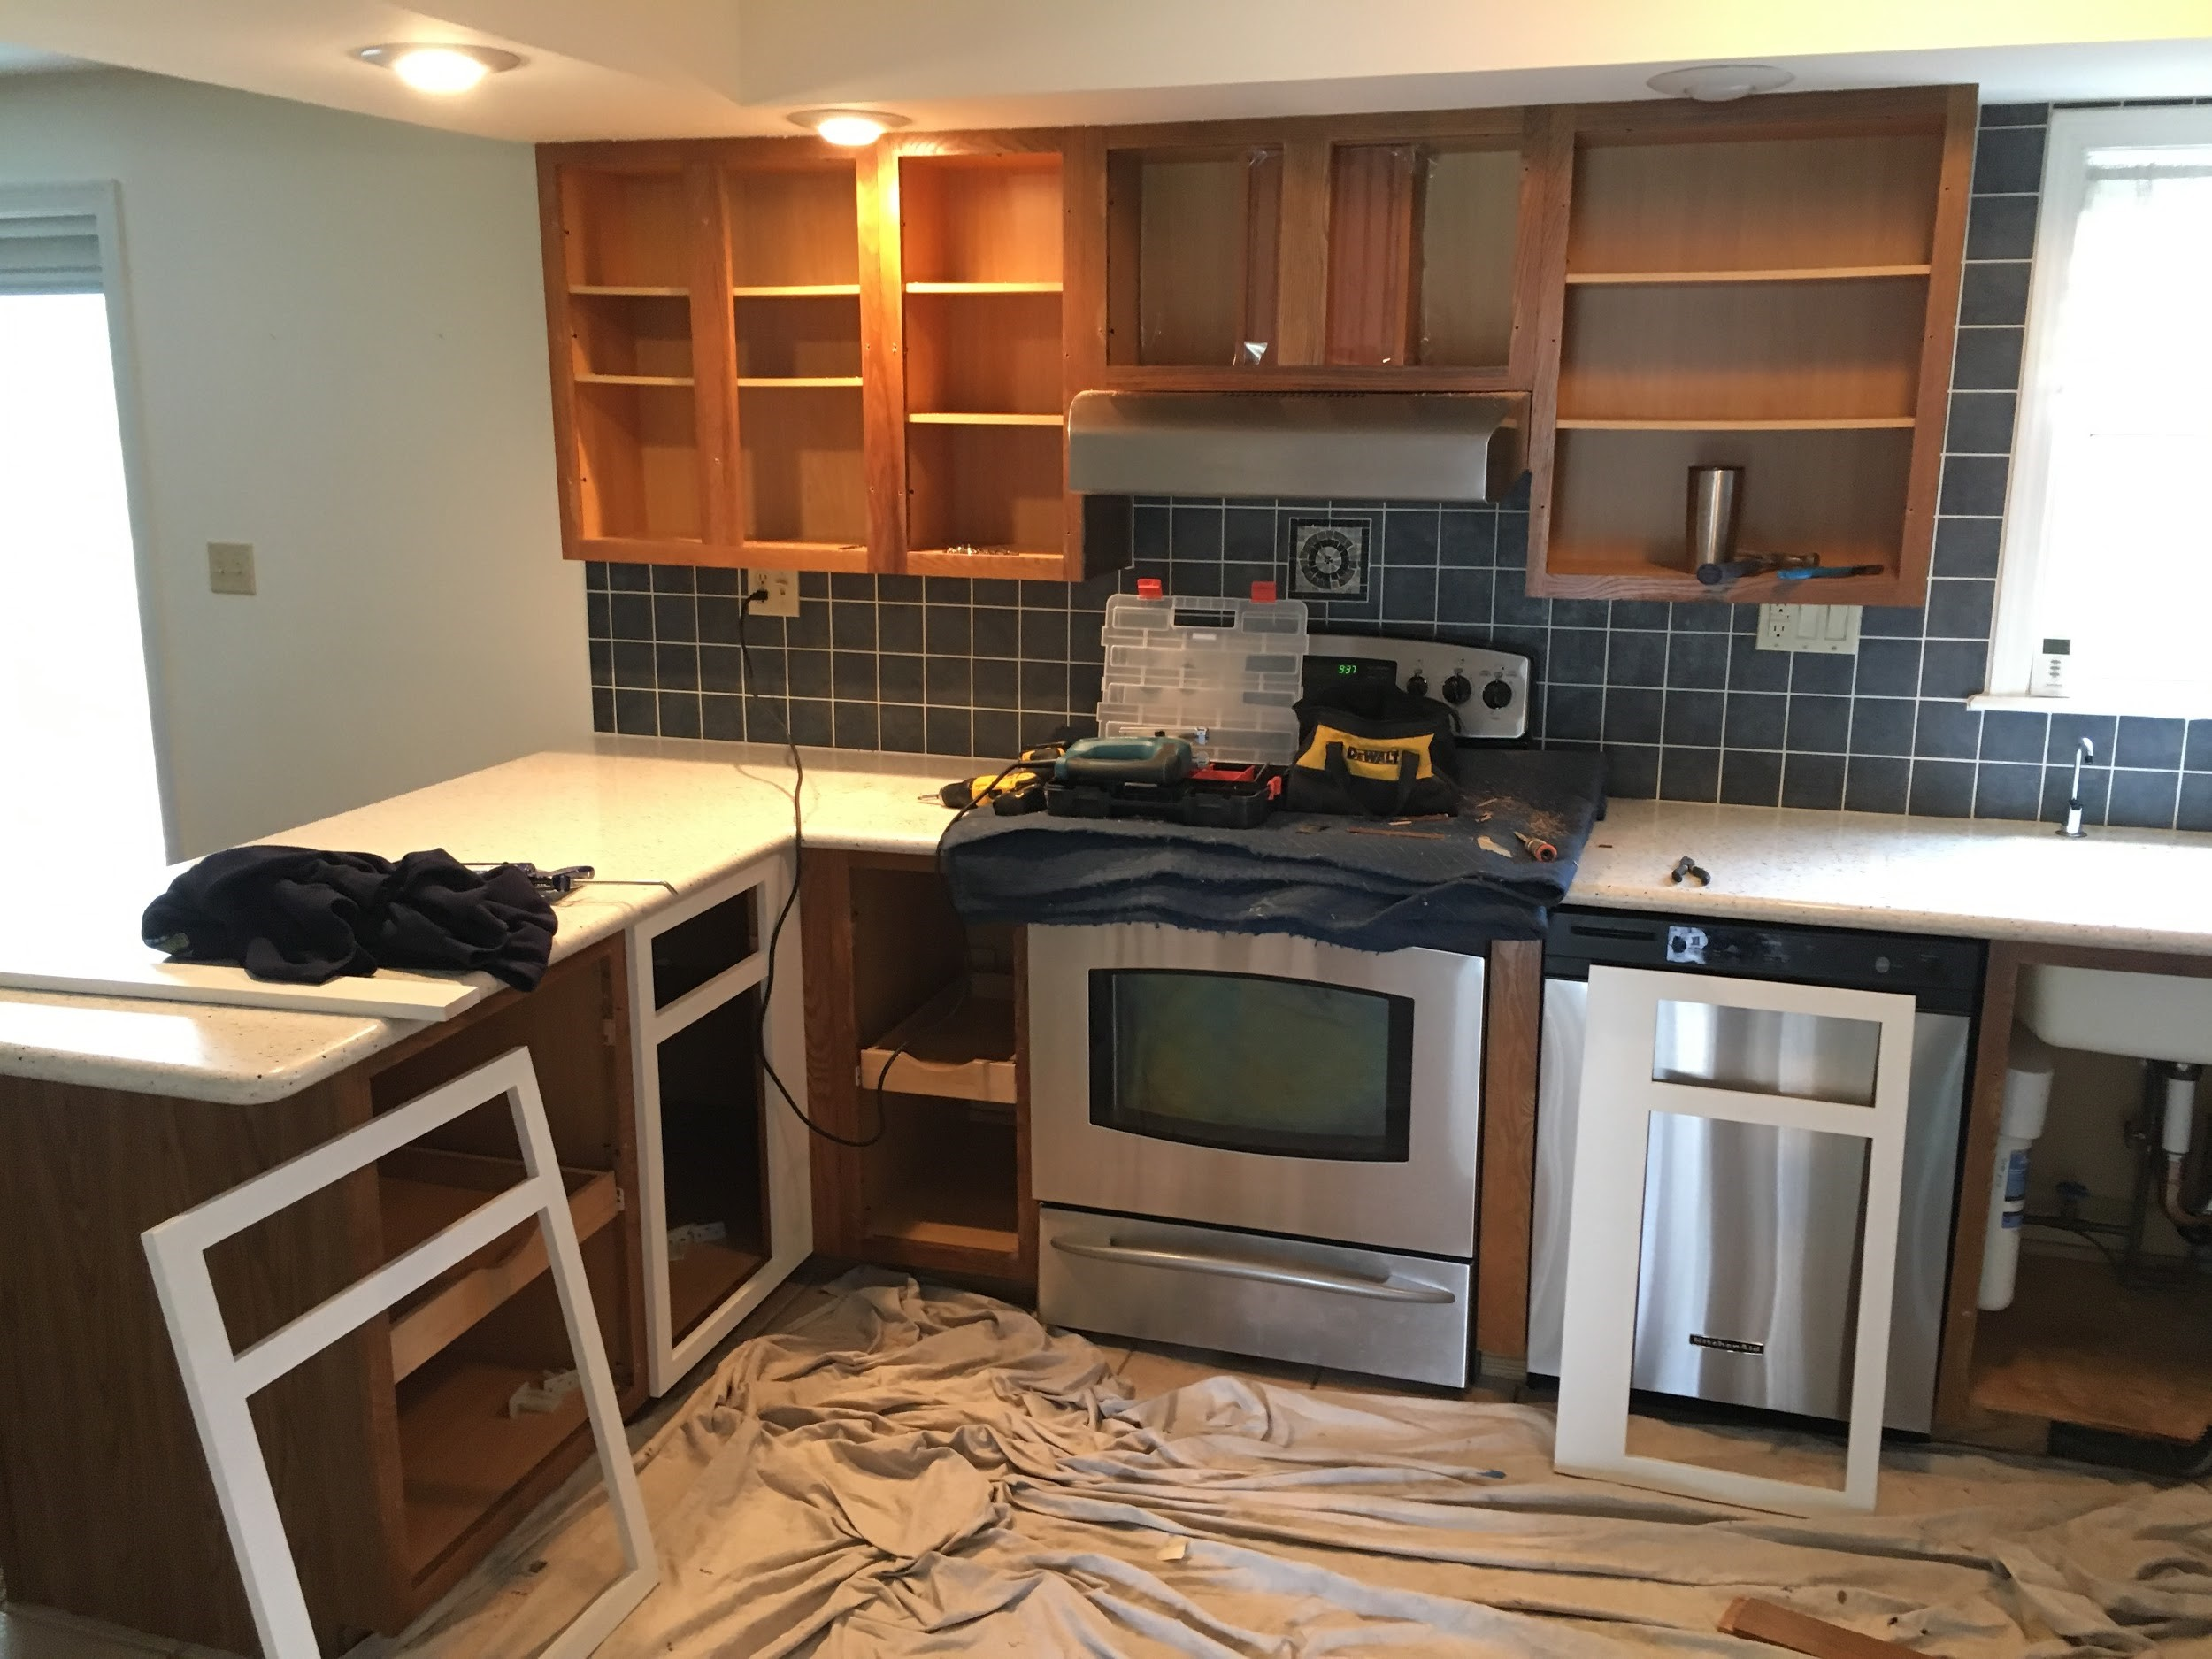 Cabinet Refacing In Yardley, PA Not Only Saves You Money, But Is Also A  Much Faster Method Of Giving Your Kitchen A Fresh New Start.